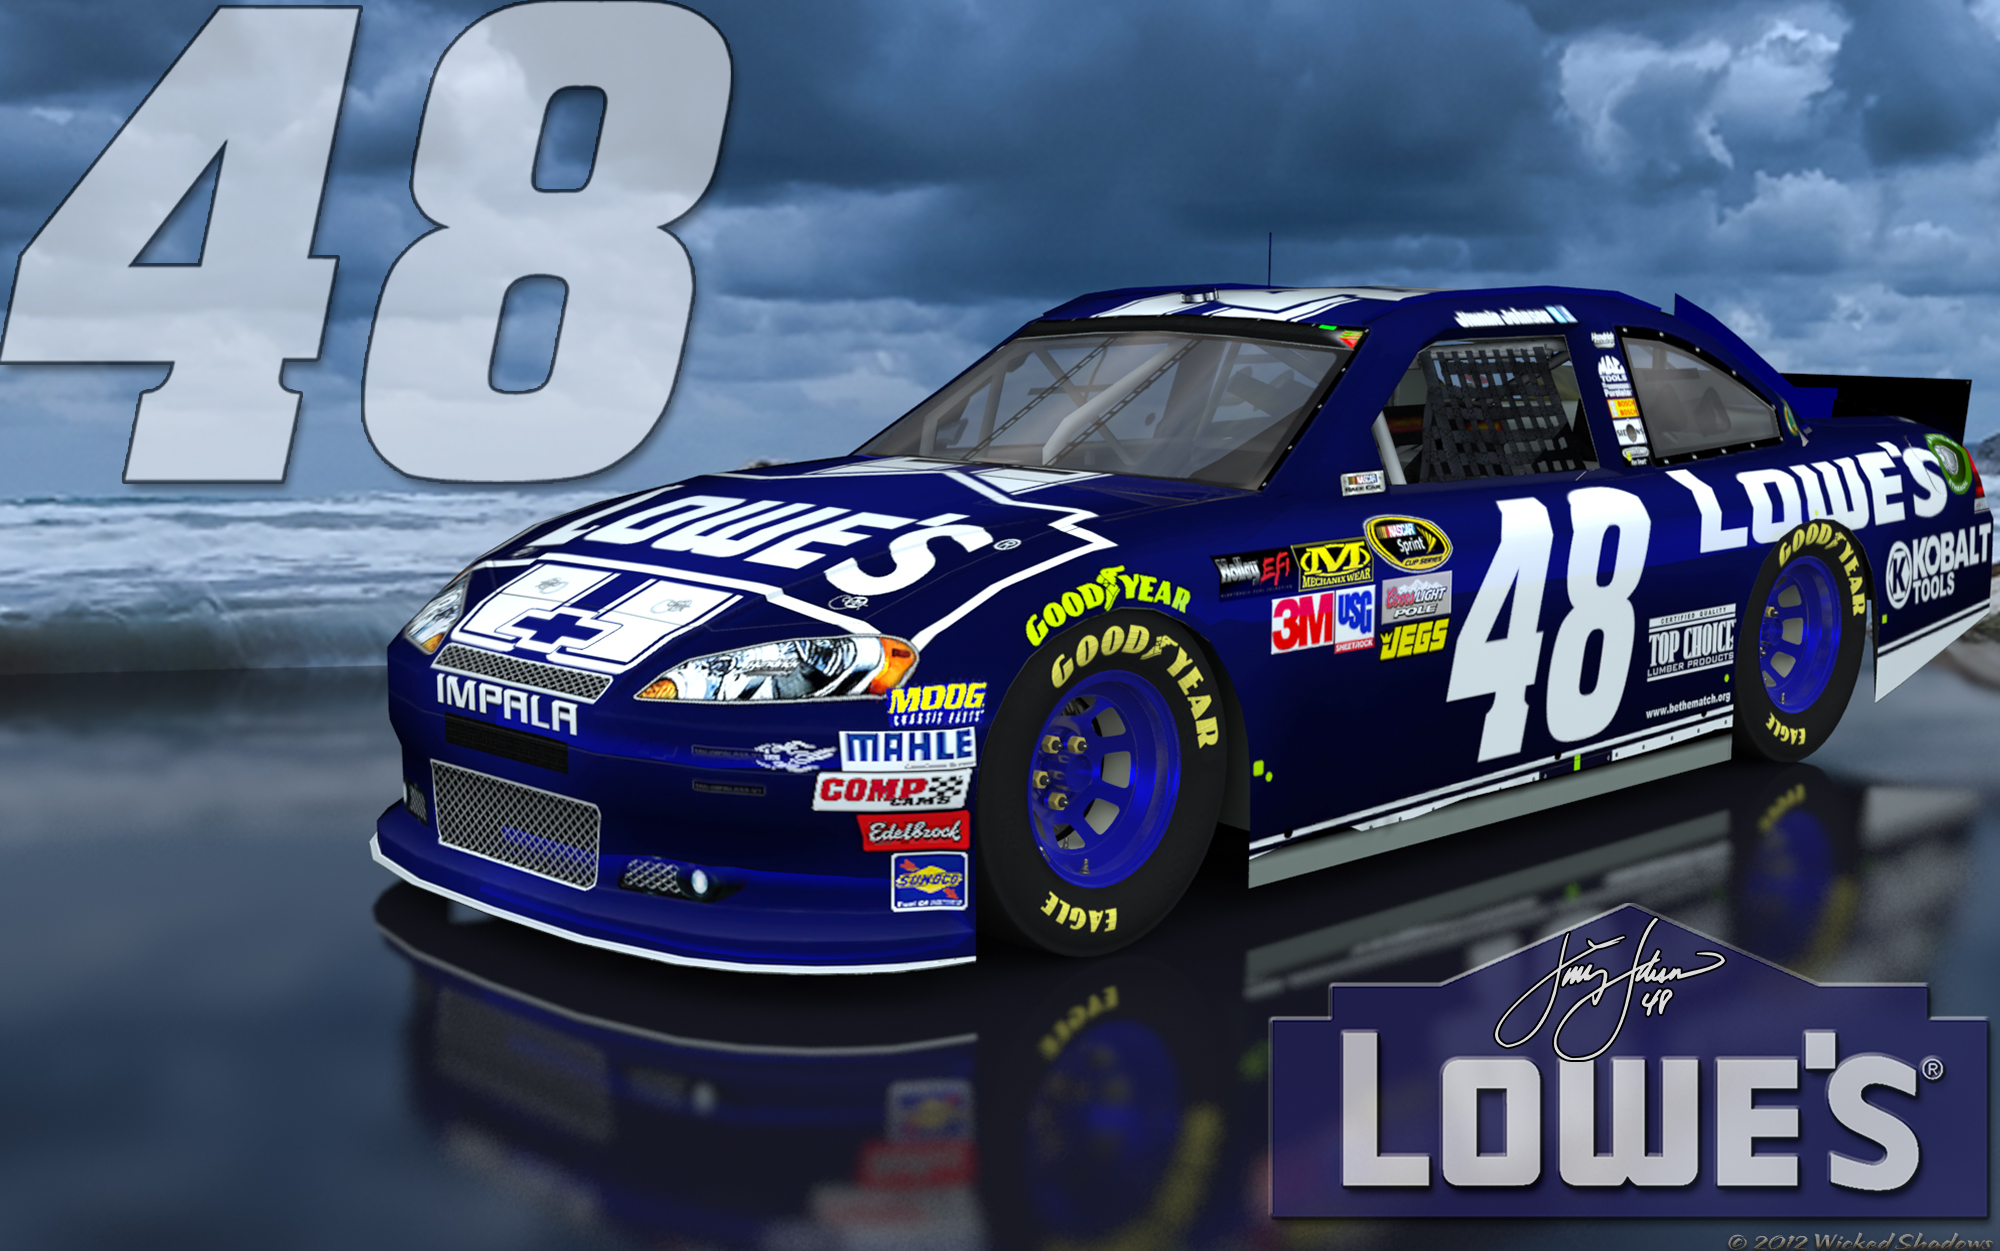 Jimmie Johnson Lowes 48 Brighter Outdoor Wallpaper 2000x1251